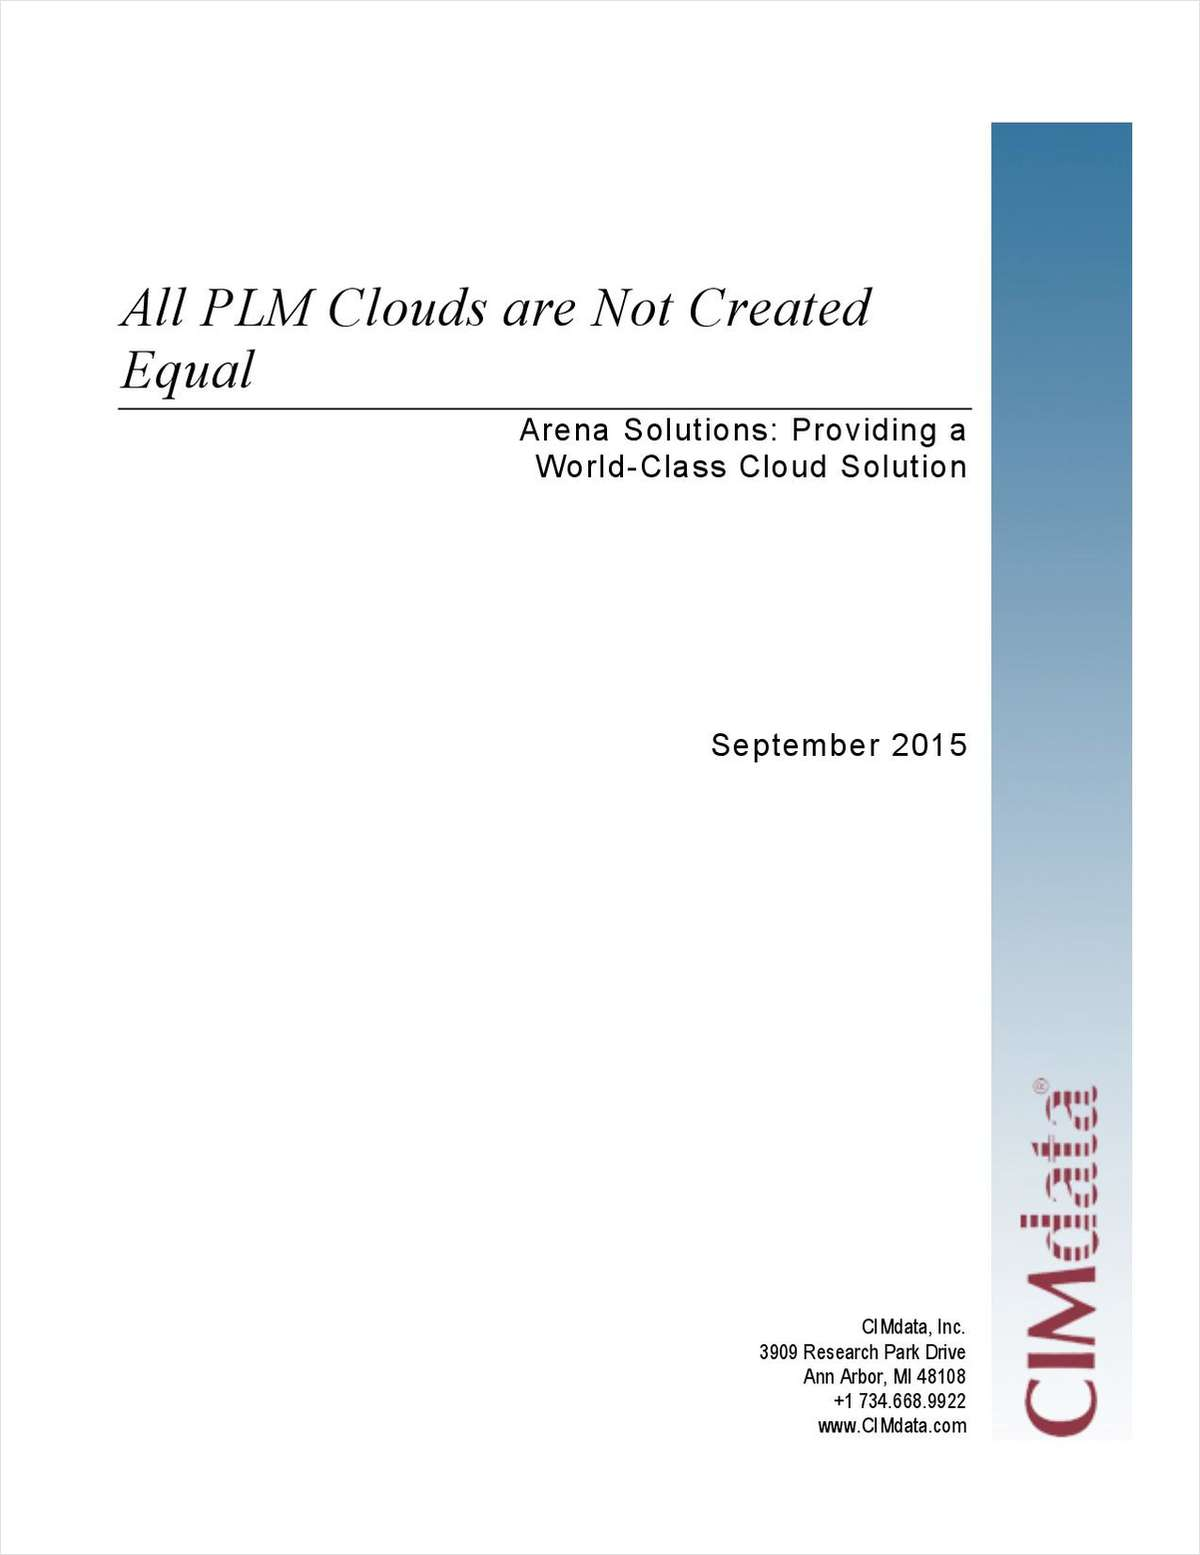 All PLM Clouds are Not Created Equal